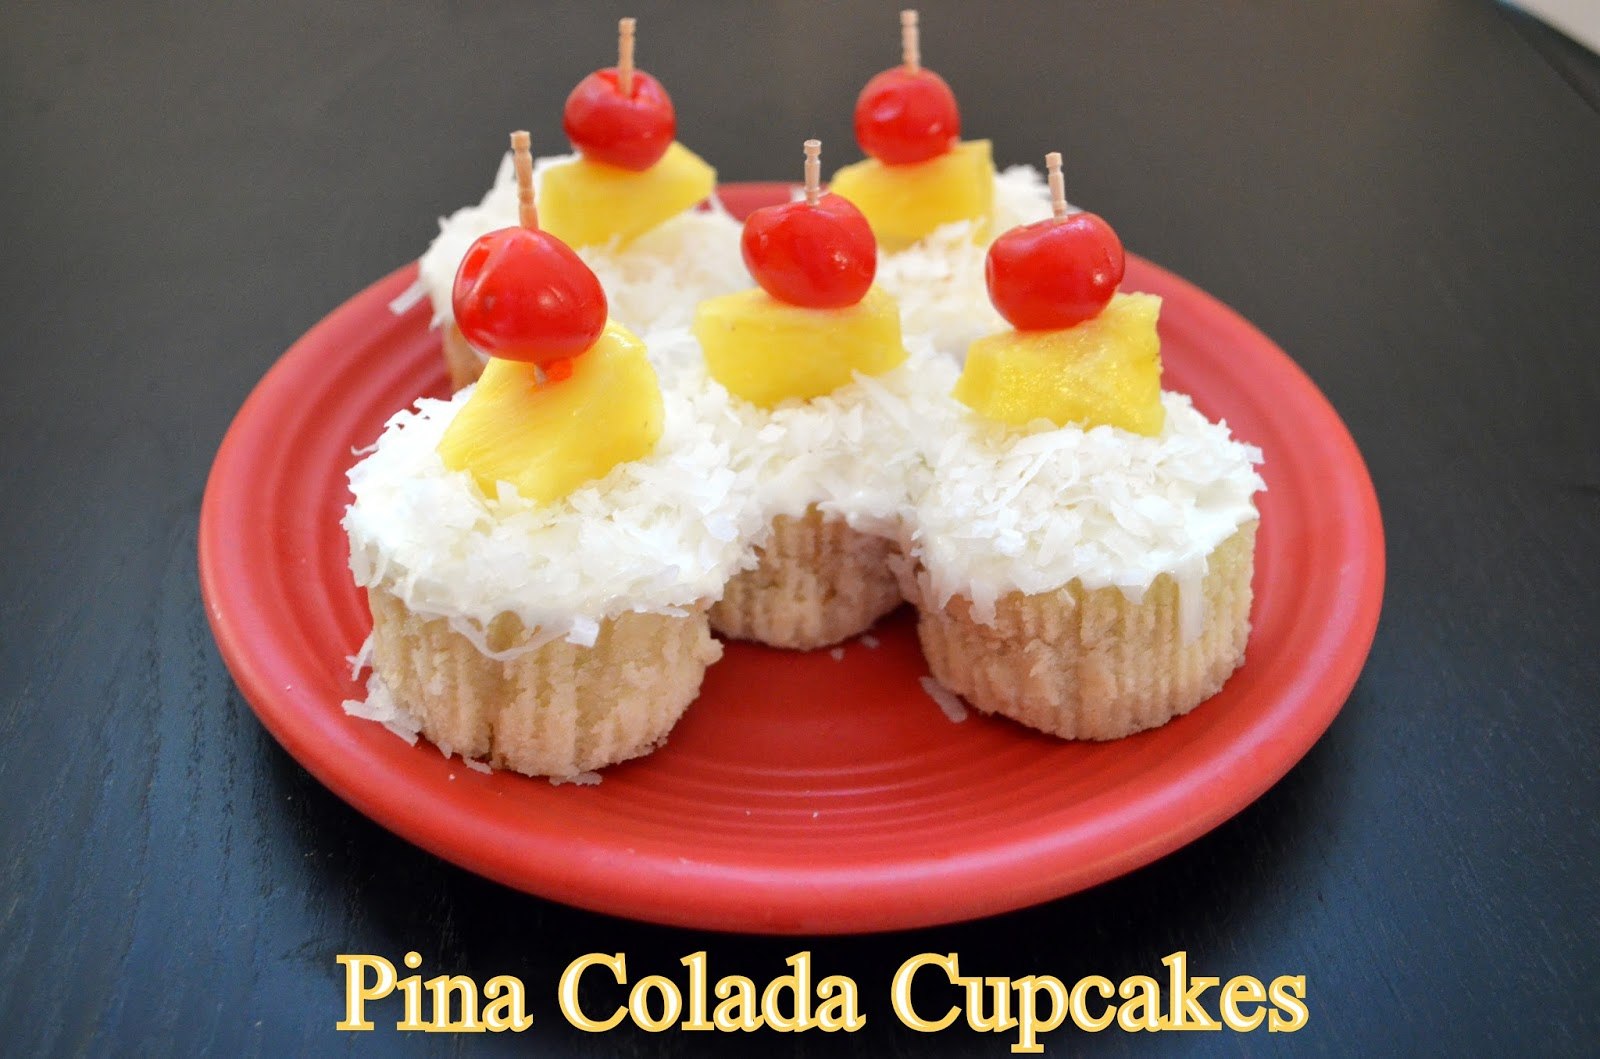 Flavors by Four: Pina Colada Cupcakes